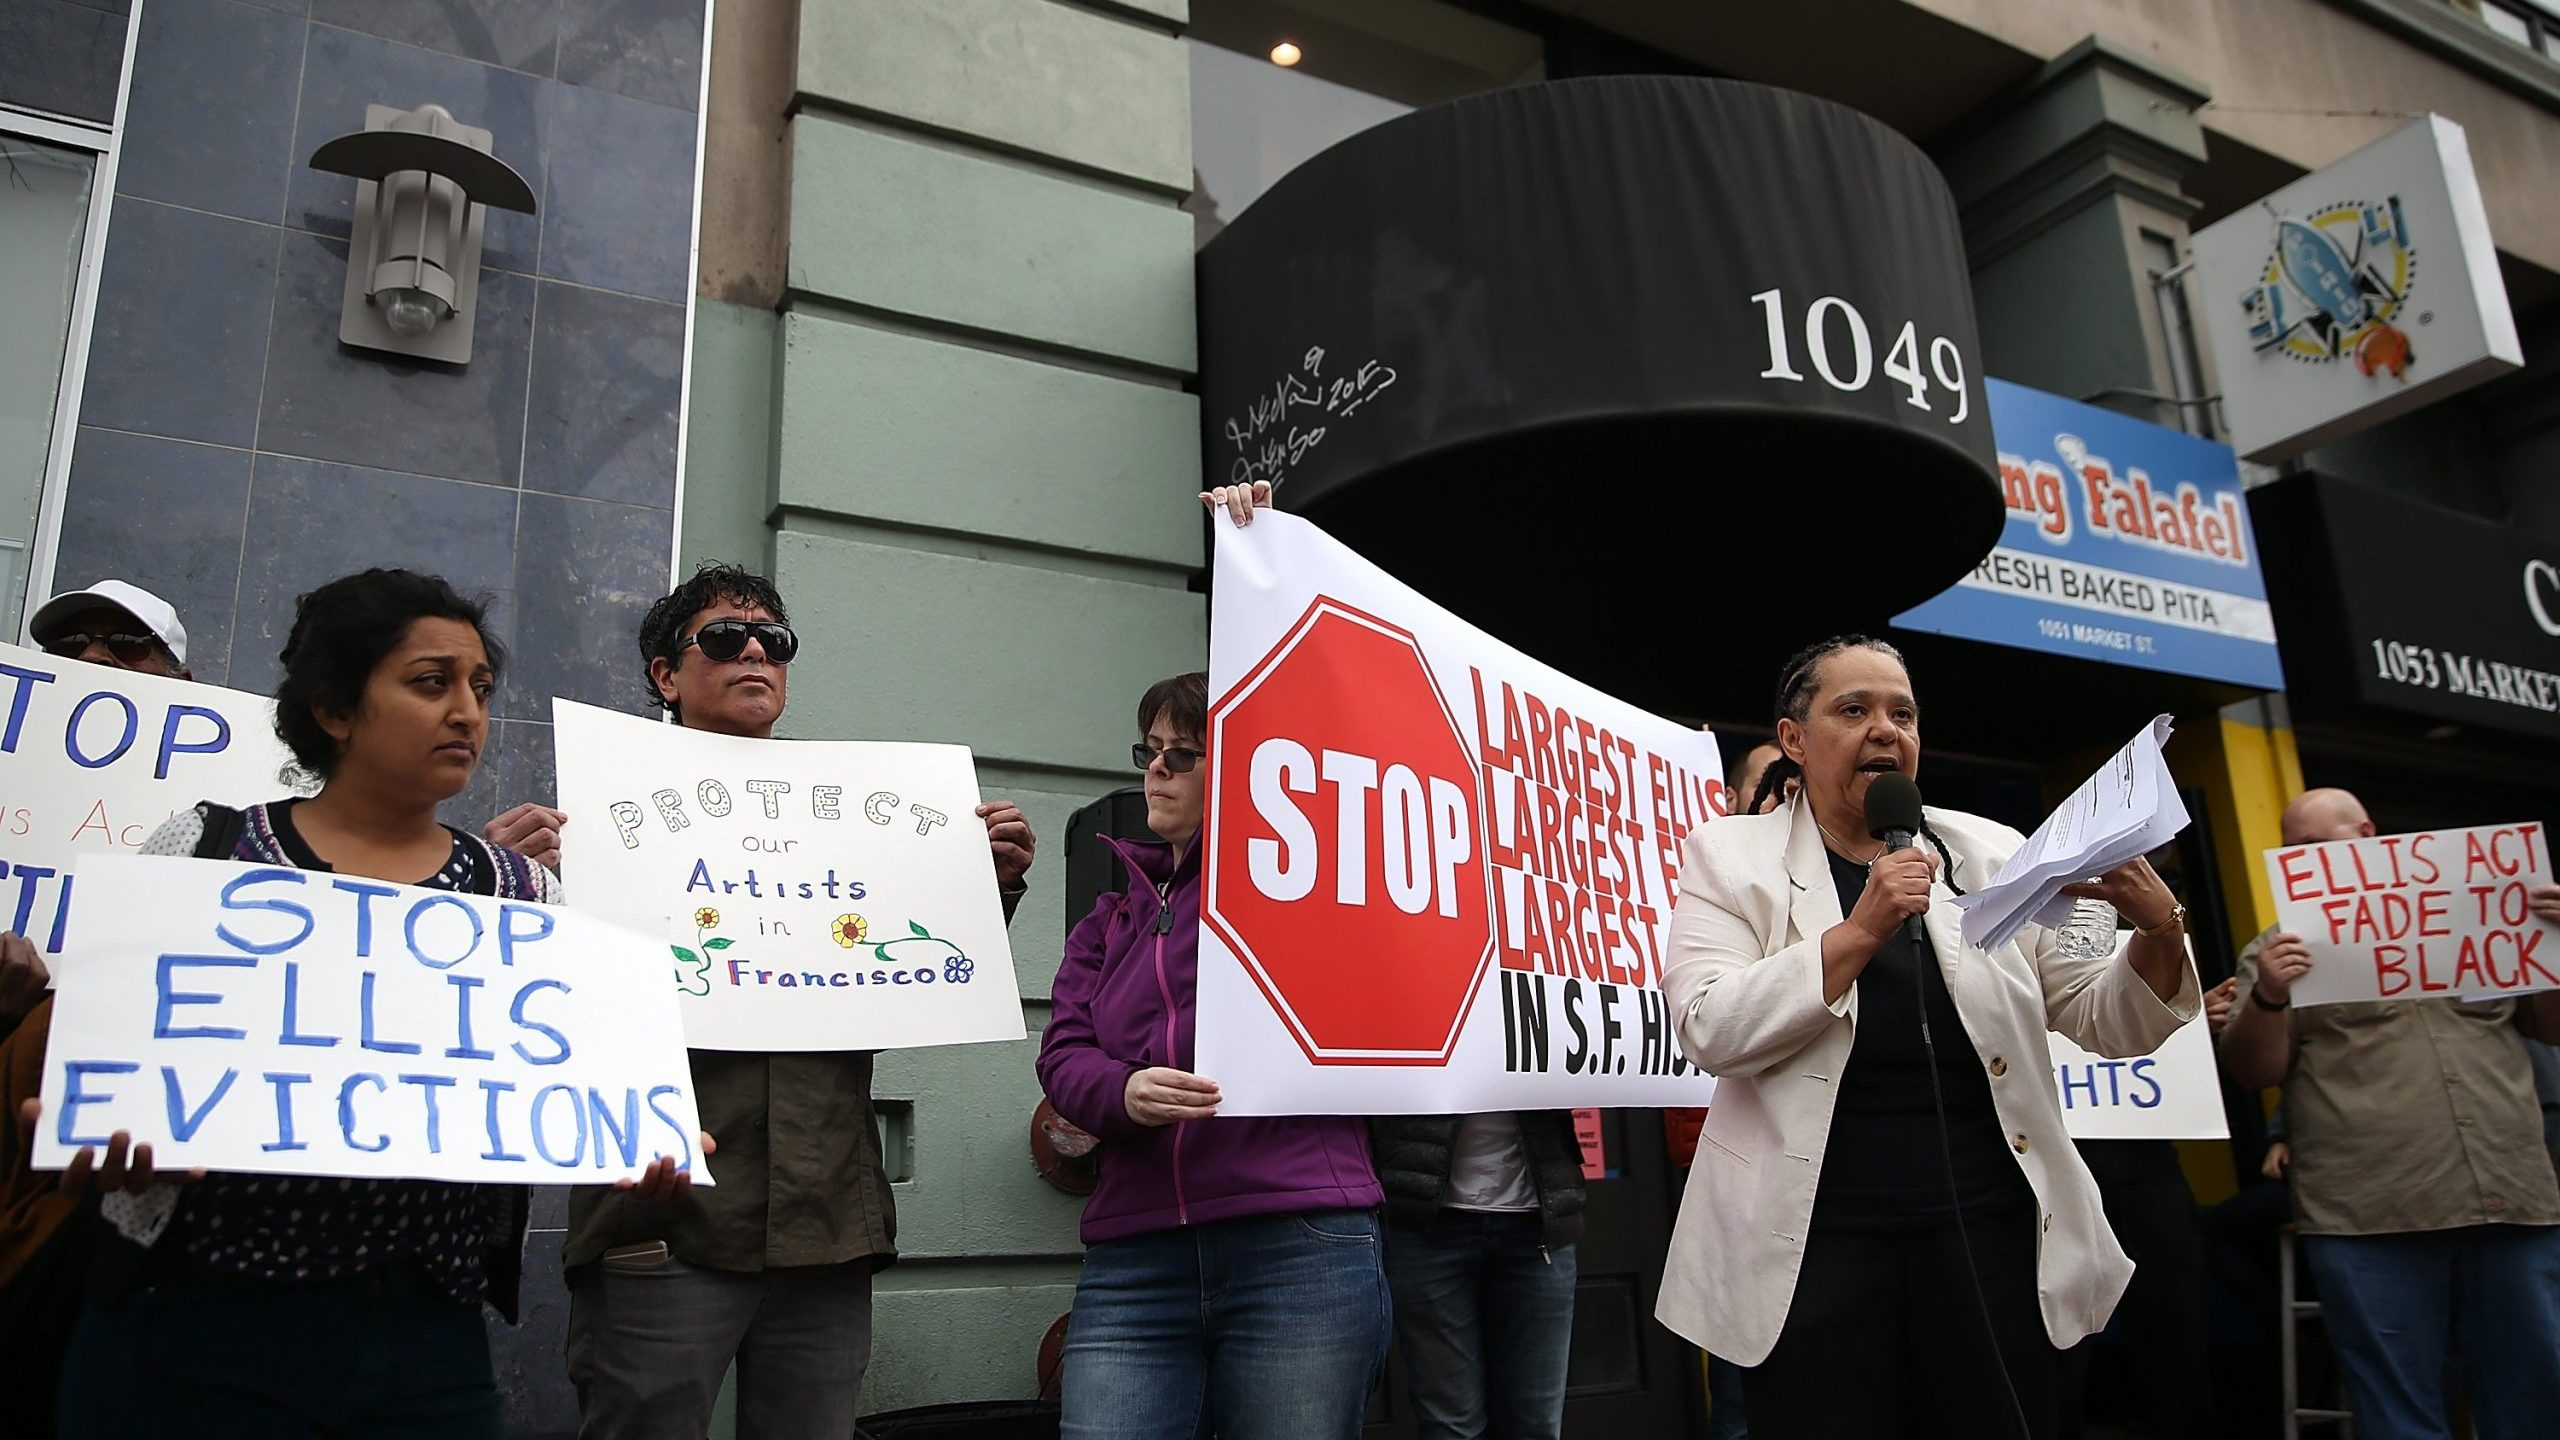 Activists and tenants of 1049 Market Street hold signs as they stage a protest against the landlord's attempts to evict them from the building on March 8, 2016, in San Francisco. (Credit: Justin Sullivan/Getty Images)